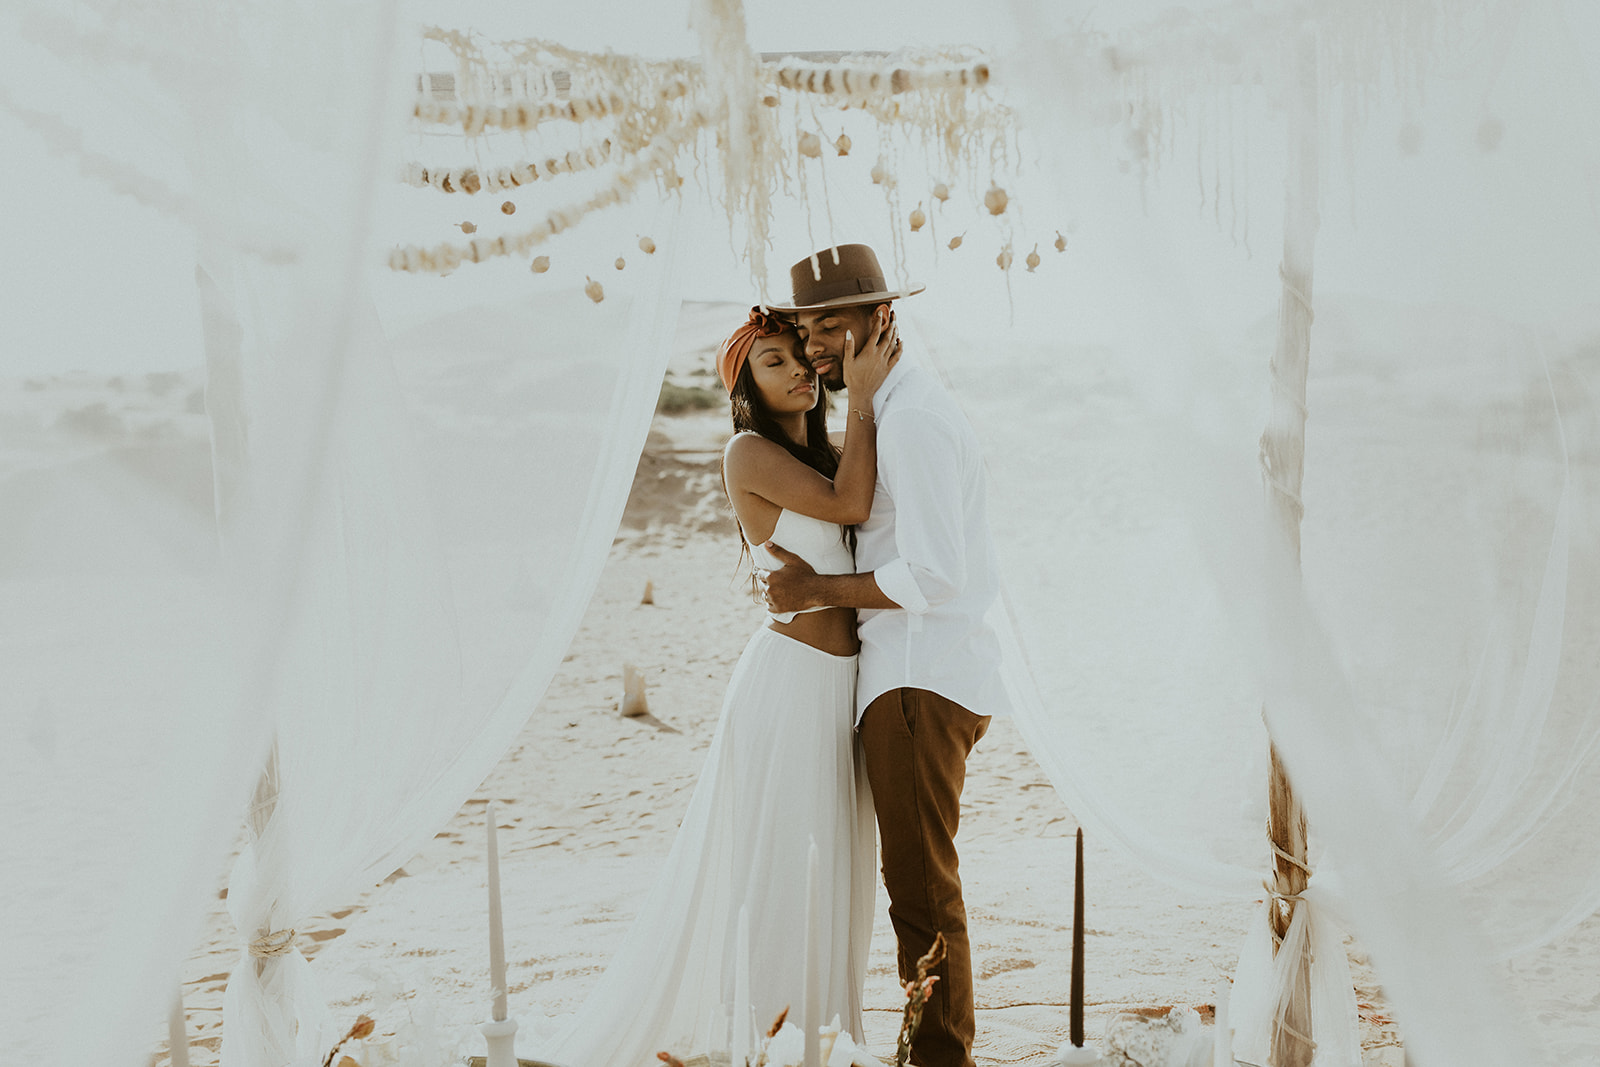 dominique + ronye - this sahara desert elopement inspiration is romantic moroccan wanderlust wedding goals